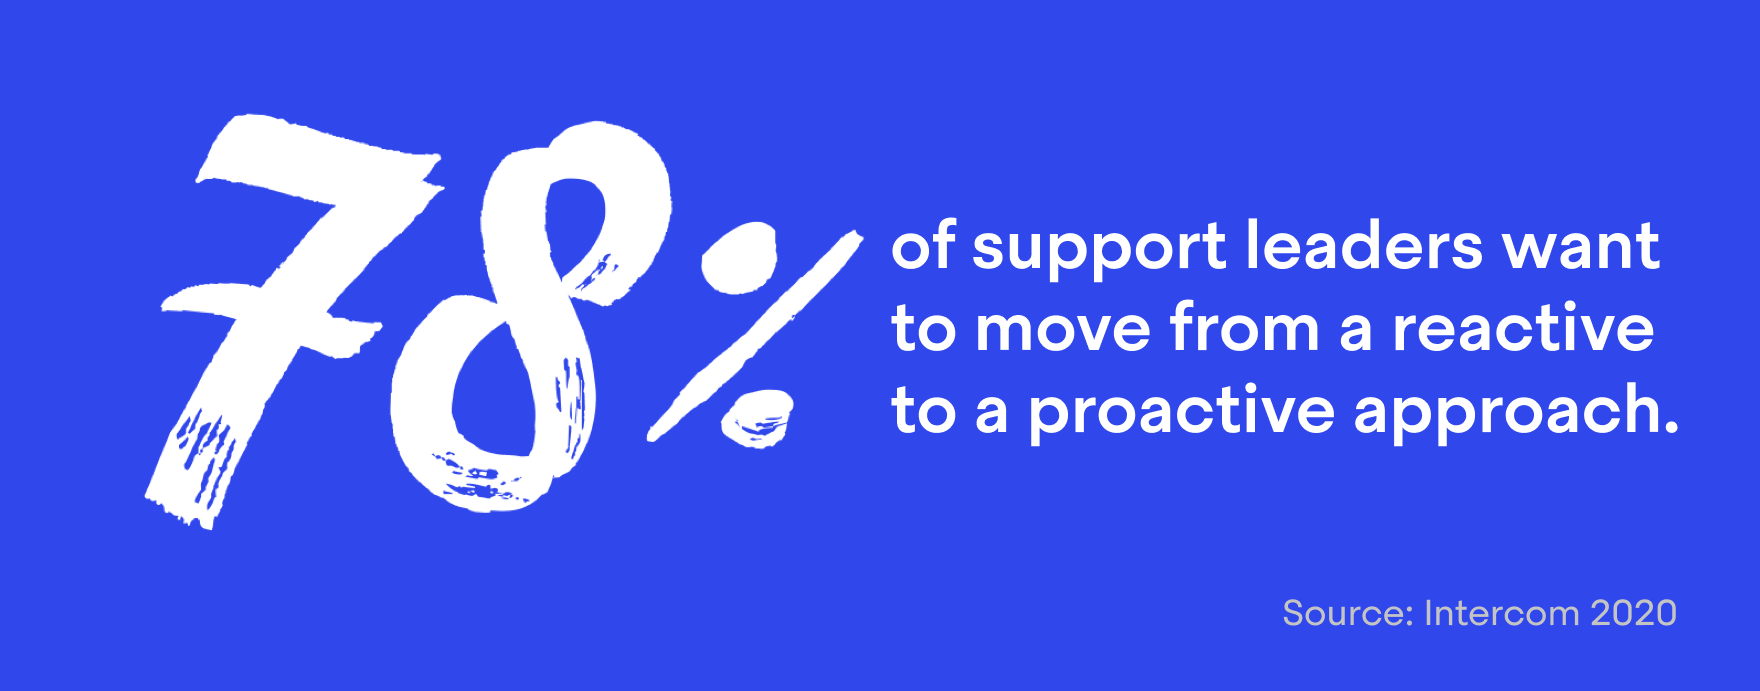 78% of support leaders want to move from a reactive to a proactive approach